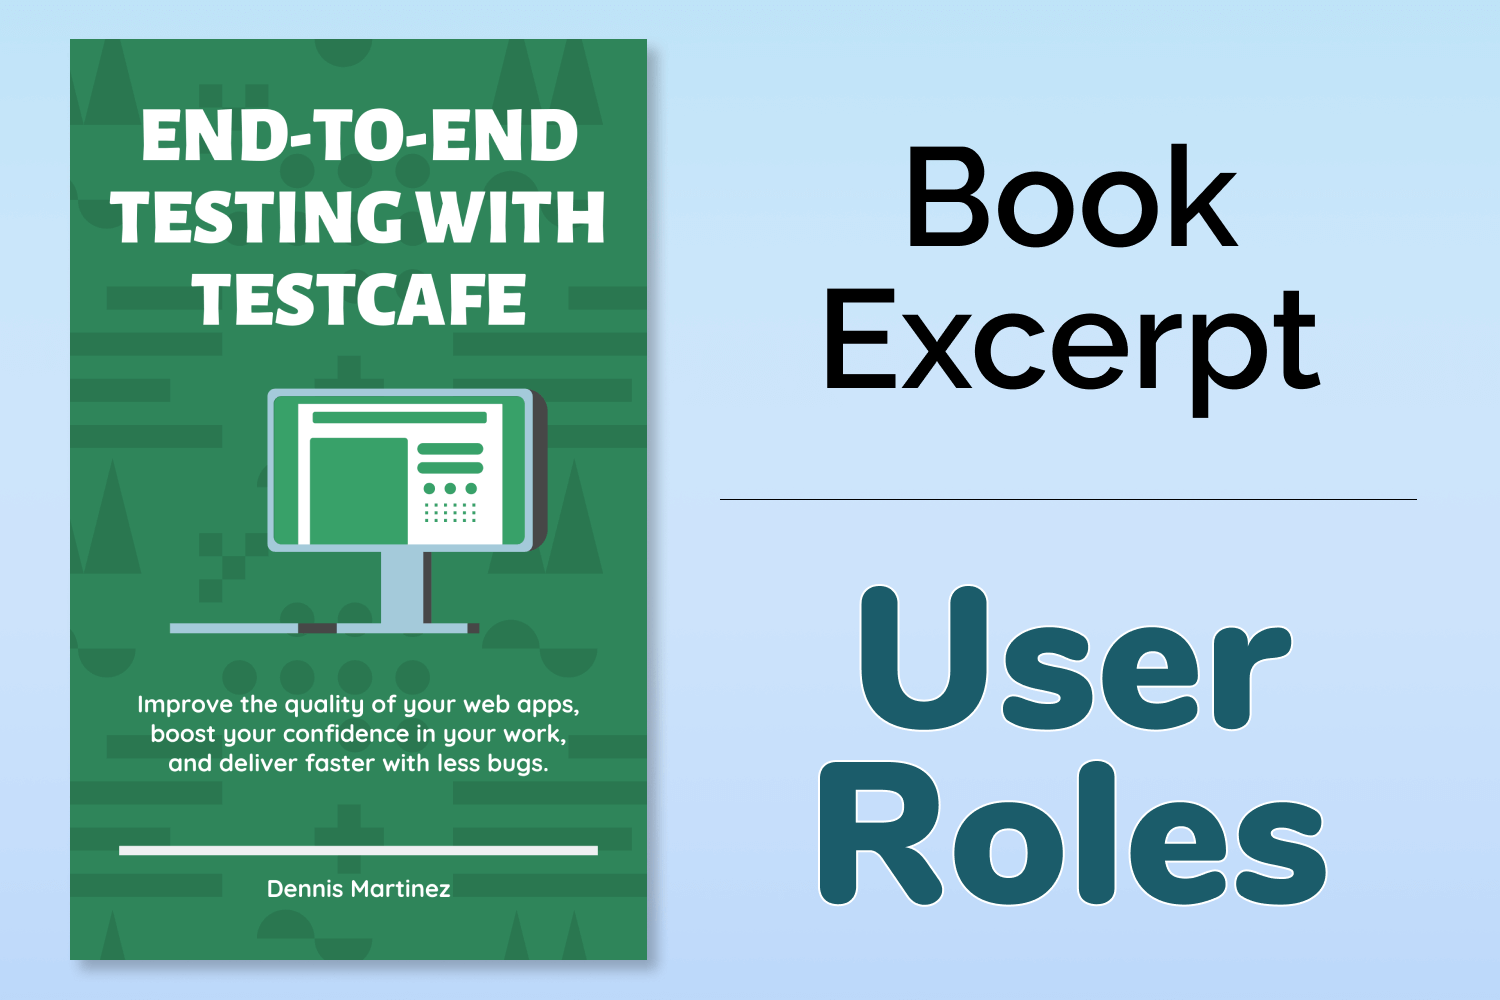 End-to-End Testing with TestCafe Book Excerpt: User Roles